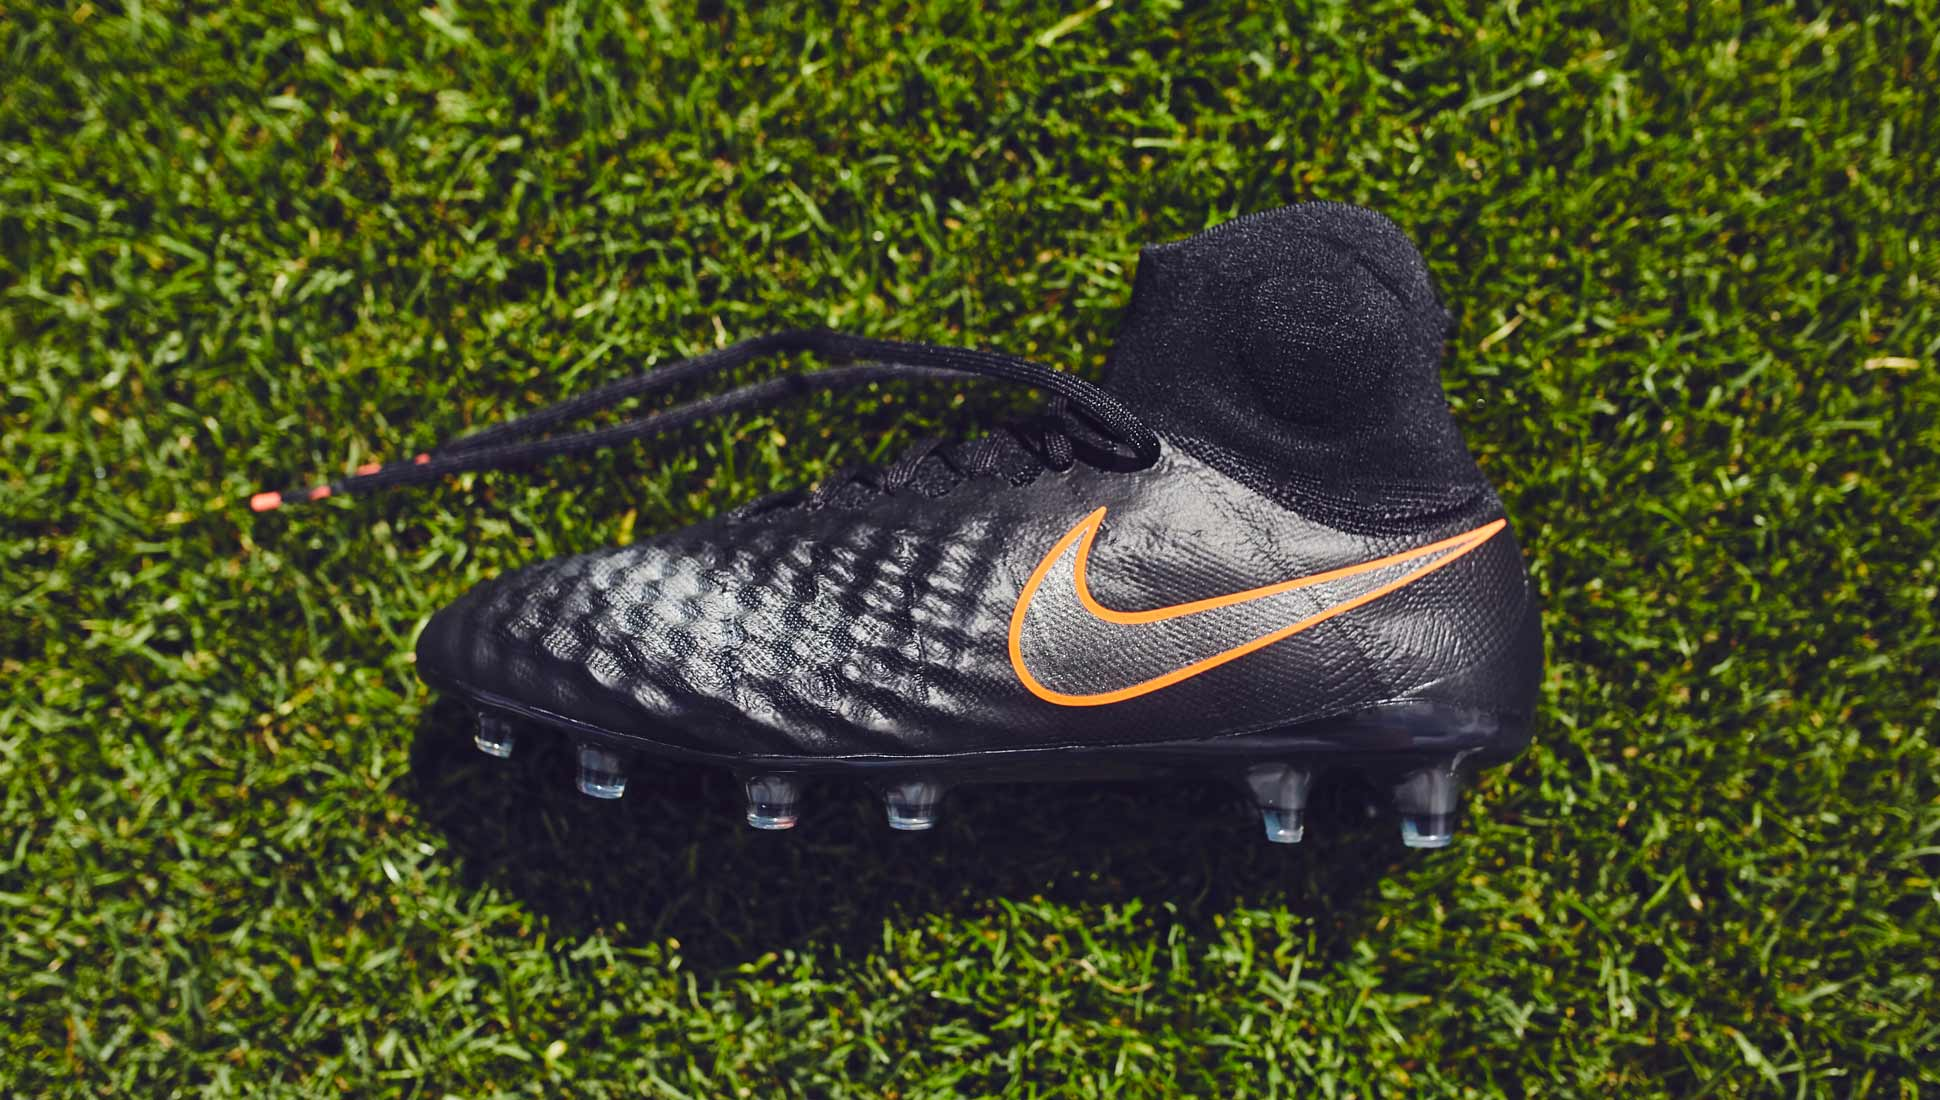 Mens Nike MAGISTAX Proximo II TF Cool Grey Soccer Cleats